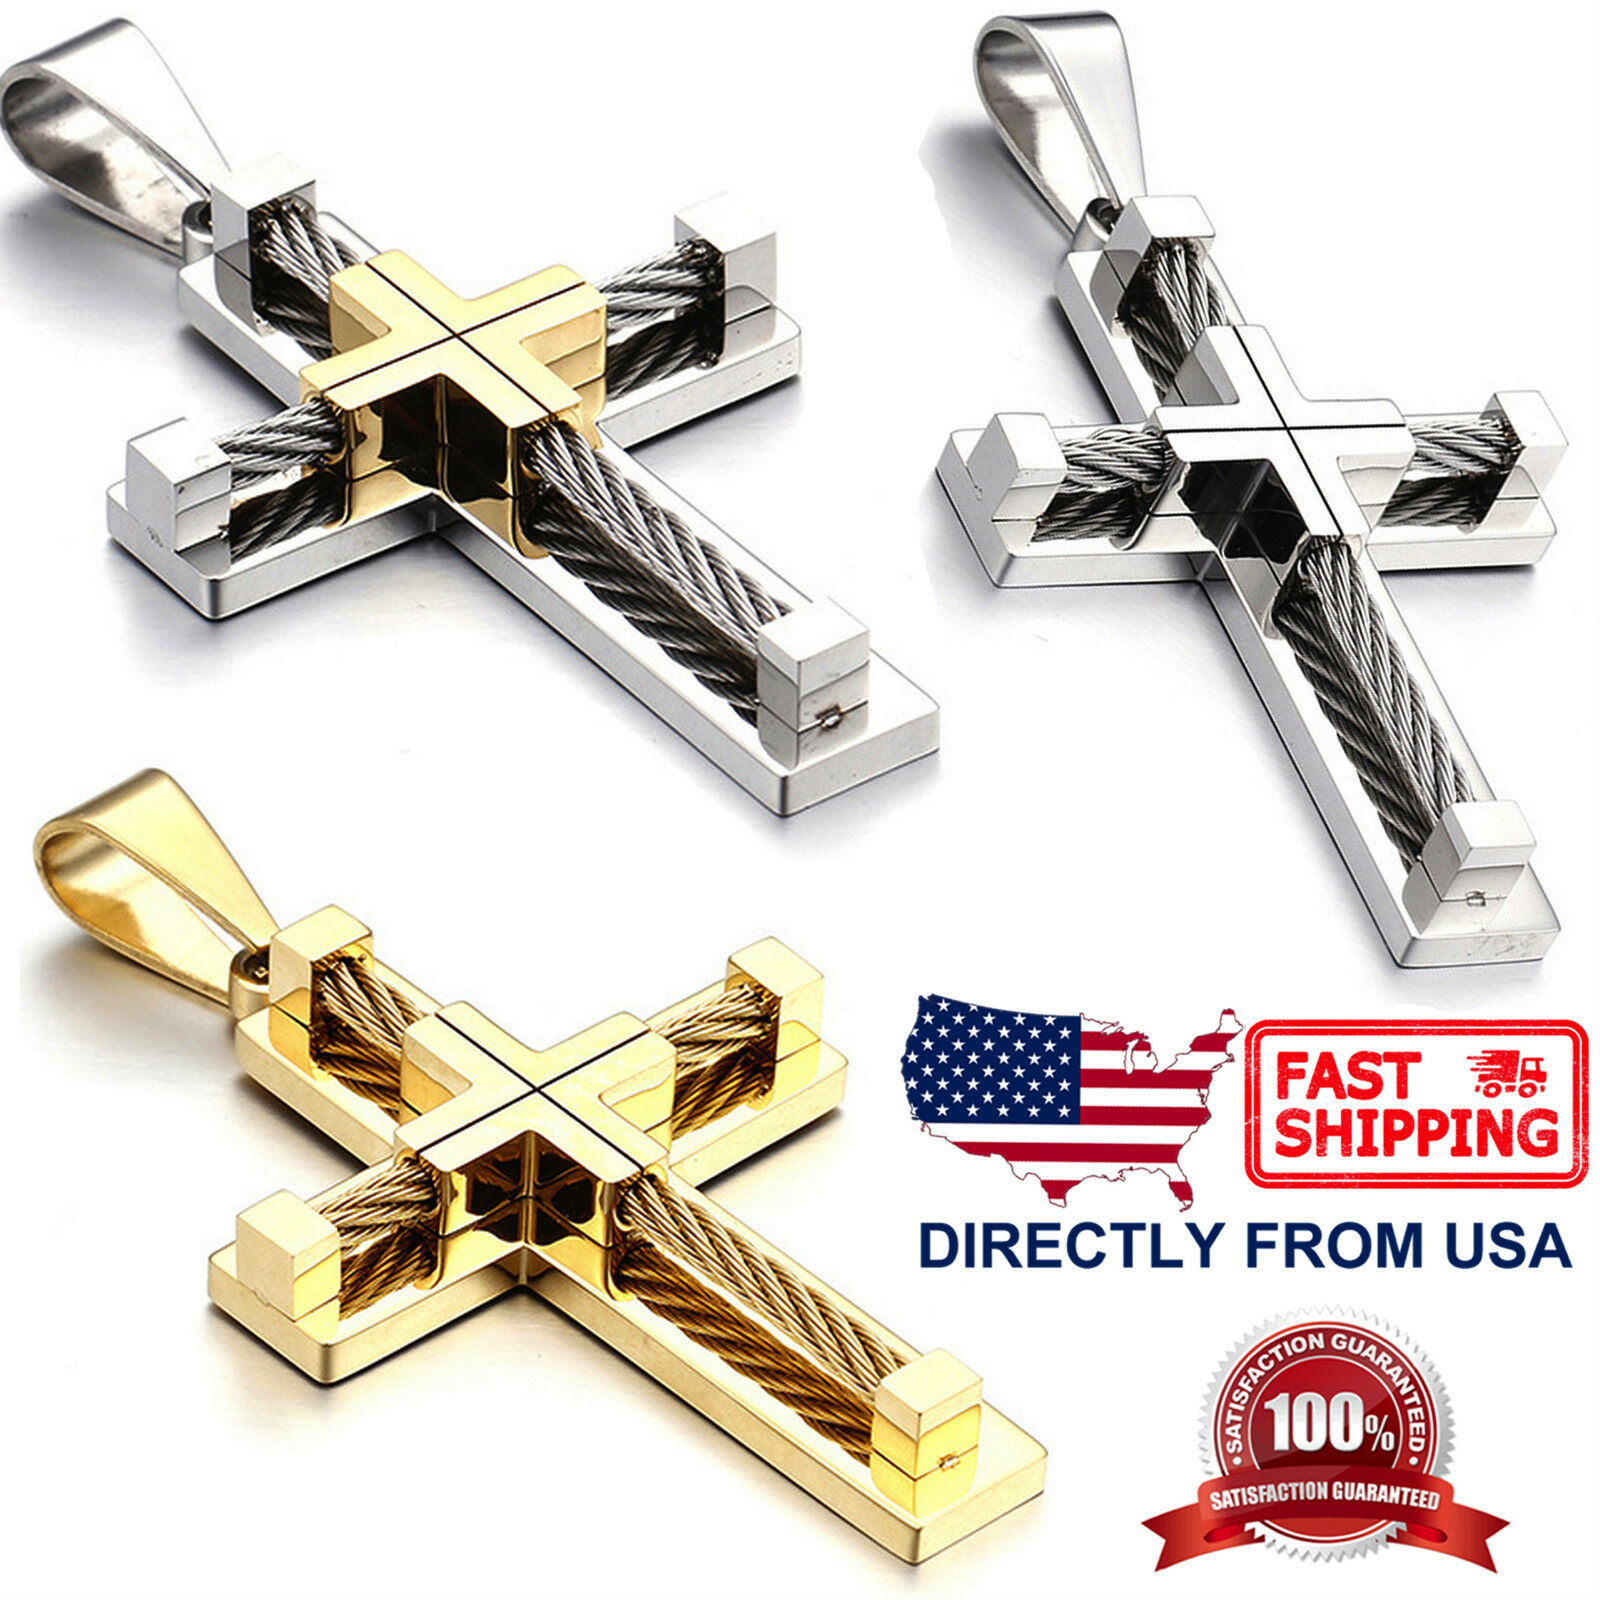 Men's Large Stainless Steel Cable Wire Layered Cross Pendant Necklace Chains, Necklaces & Pendants